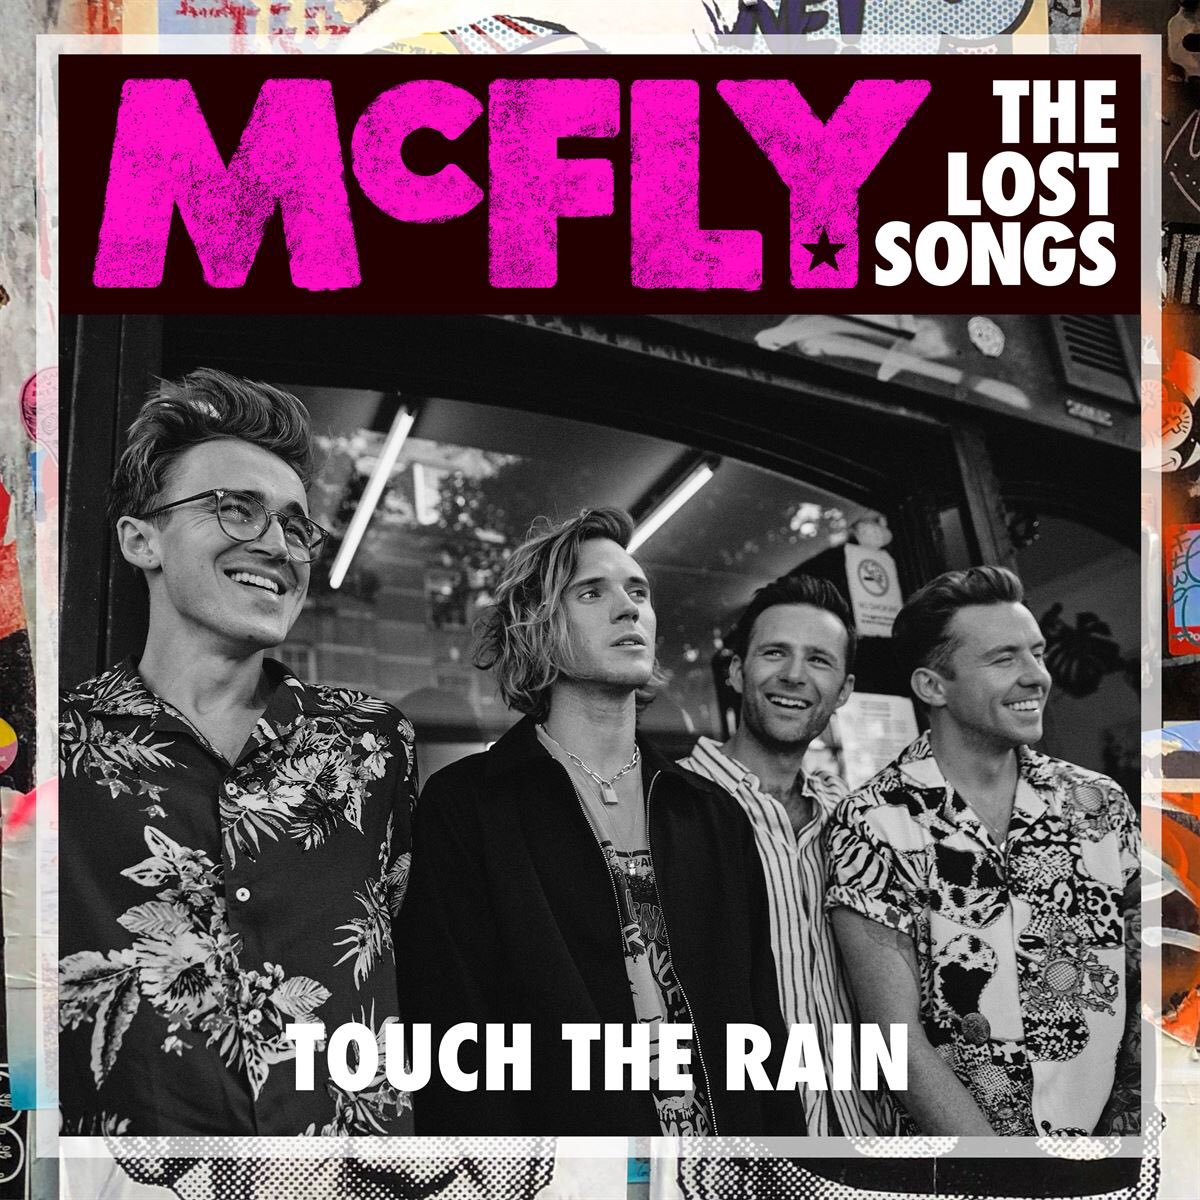 We thought we'd kick The Lost Songs off with a double release, TOUCH THE RAIN and RED will be available to stream from 5pm today.  #mcfly #thelostsongs<br>http://pic.twitter.com/6QV0ZpQOlz